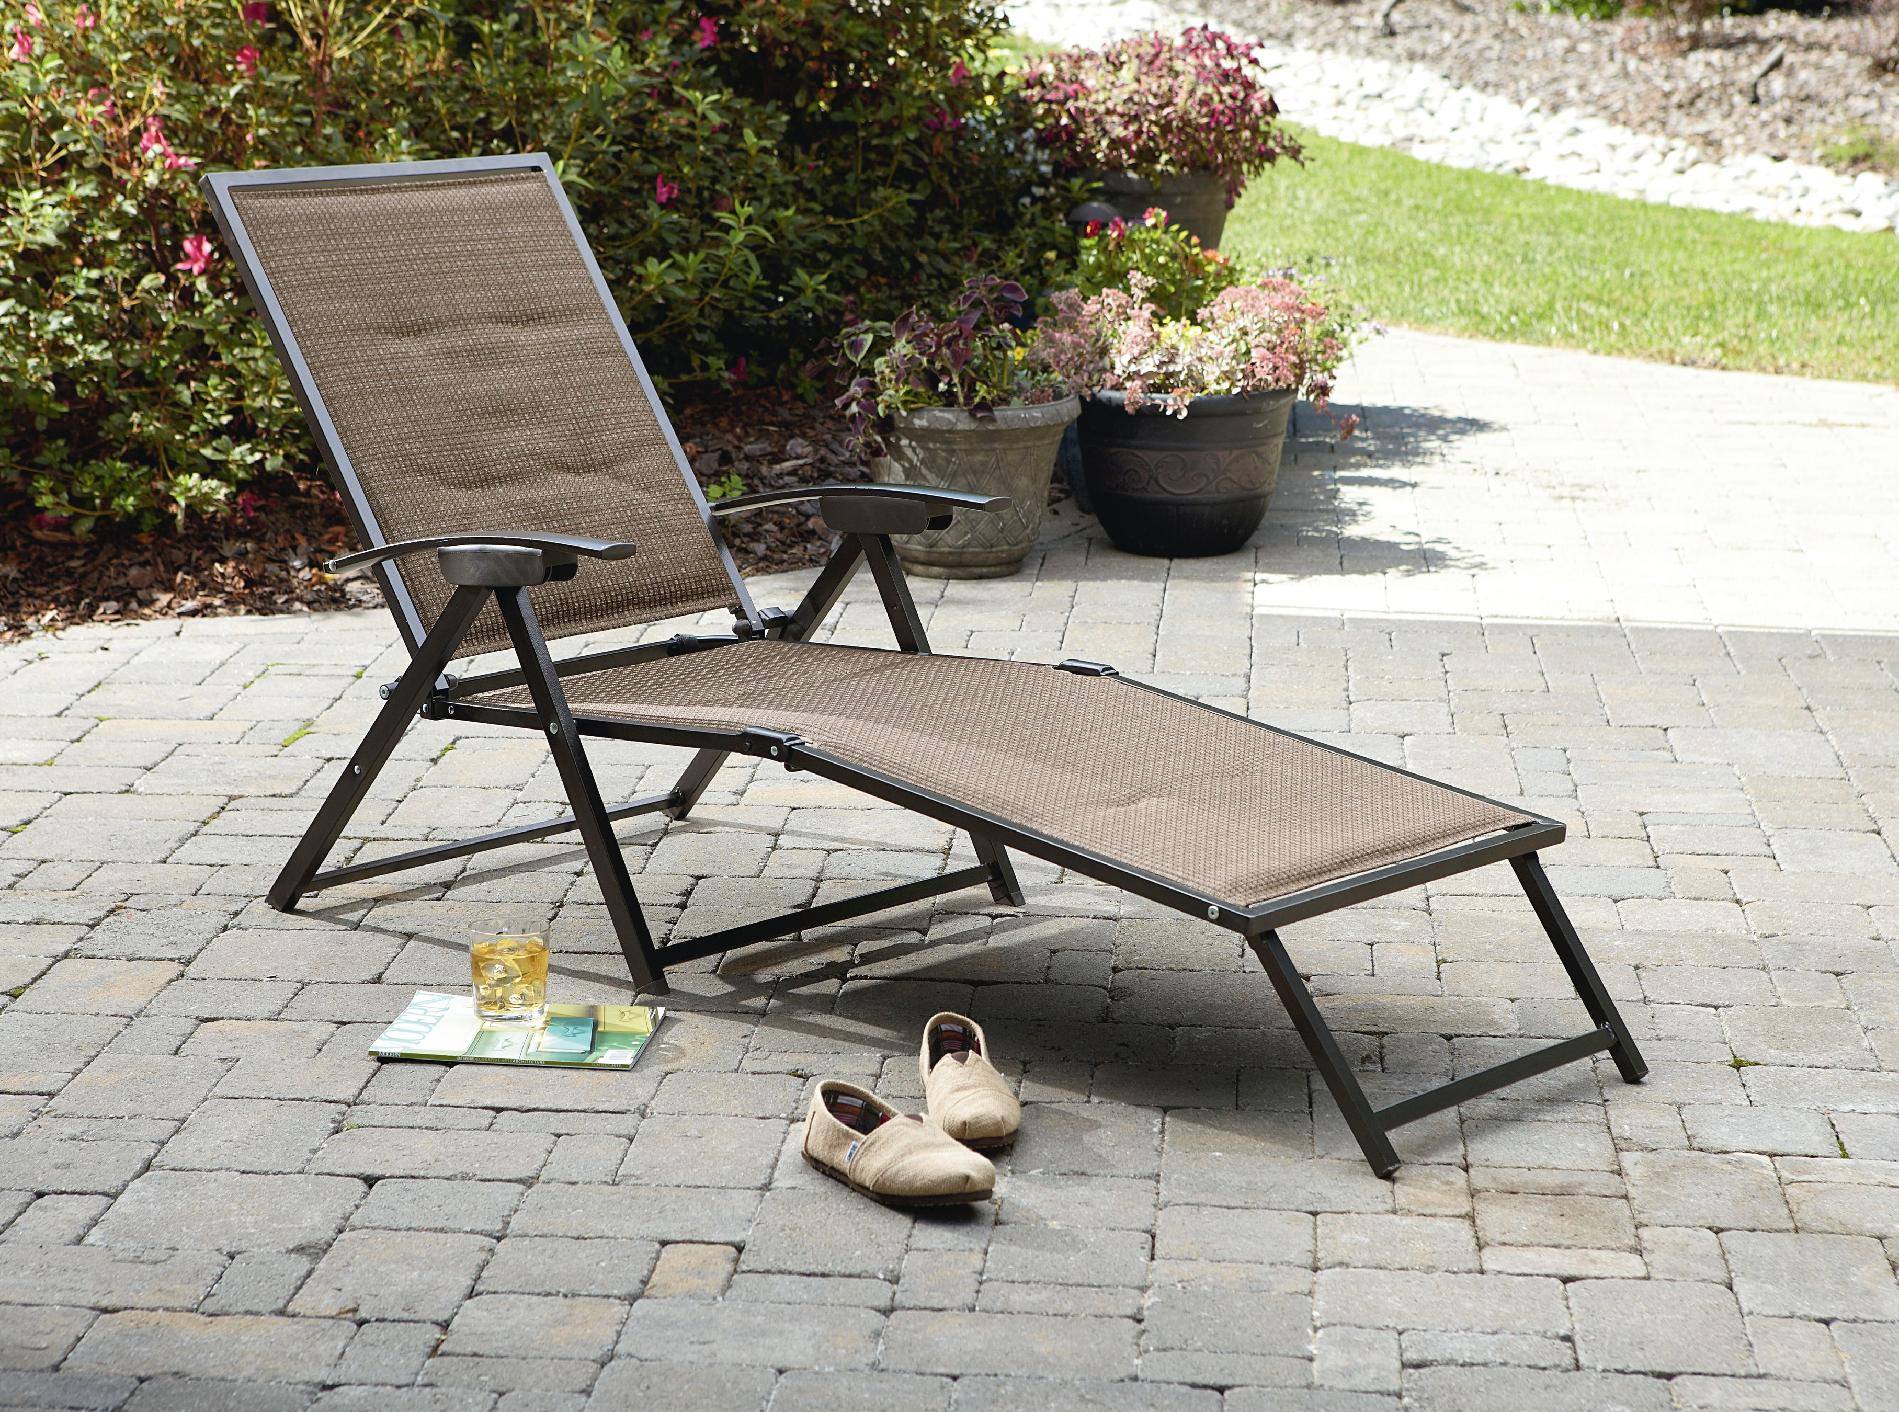 patio folding chairs padded heated massage chair recliner garden oasis harrison matching sling chaise